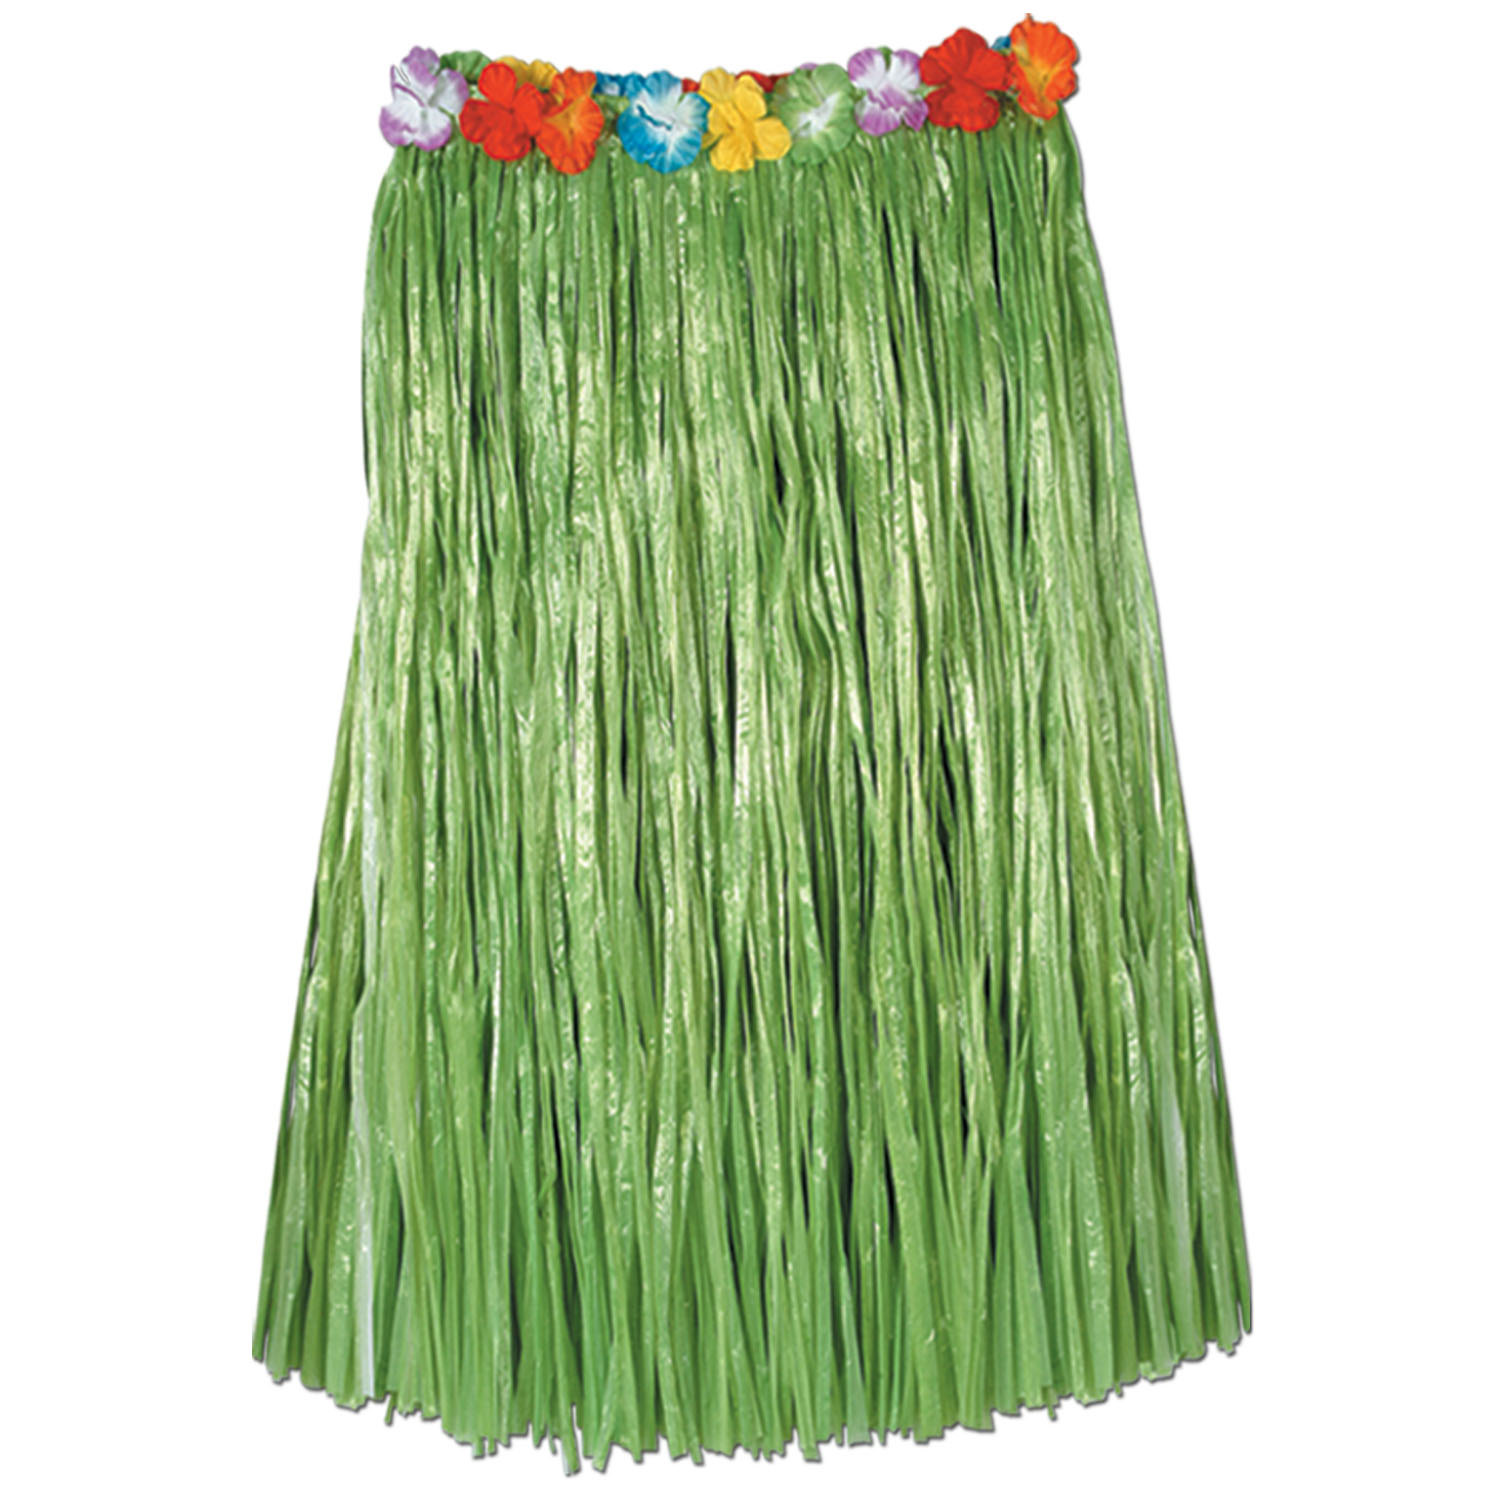 Adult Artificial Grass Hula Skirt (Pack of 12) hula, luau, skirt, hawaiian, adult, artificial grass, costume